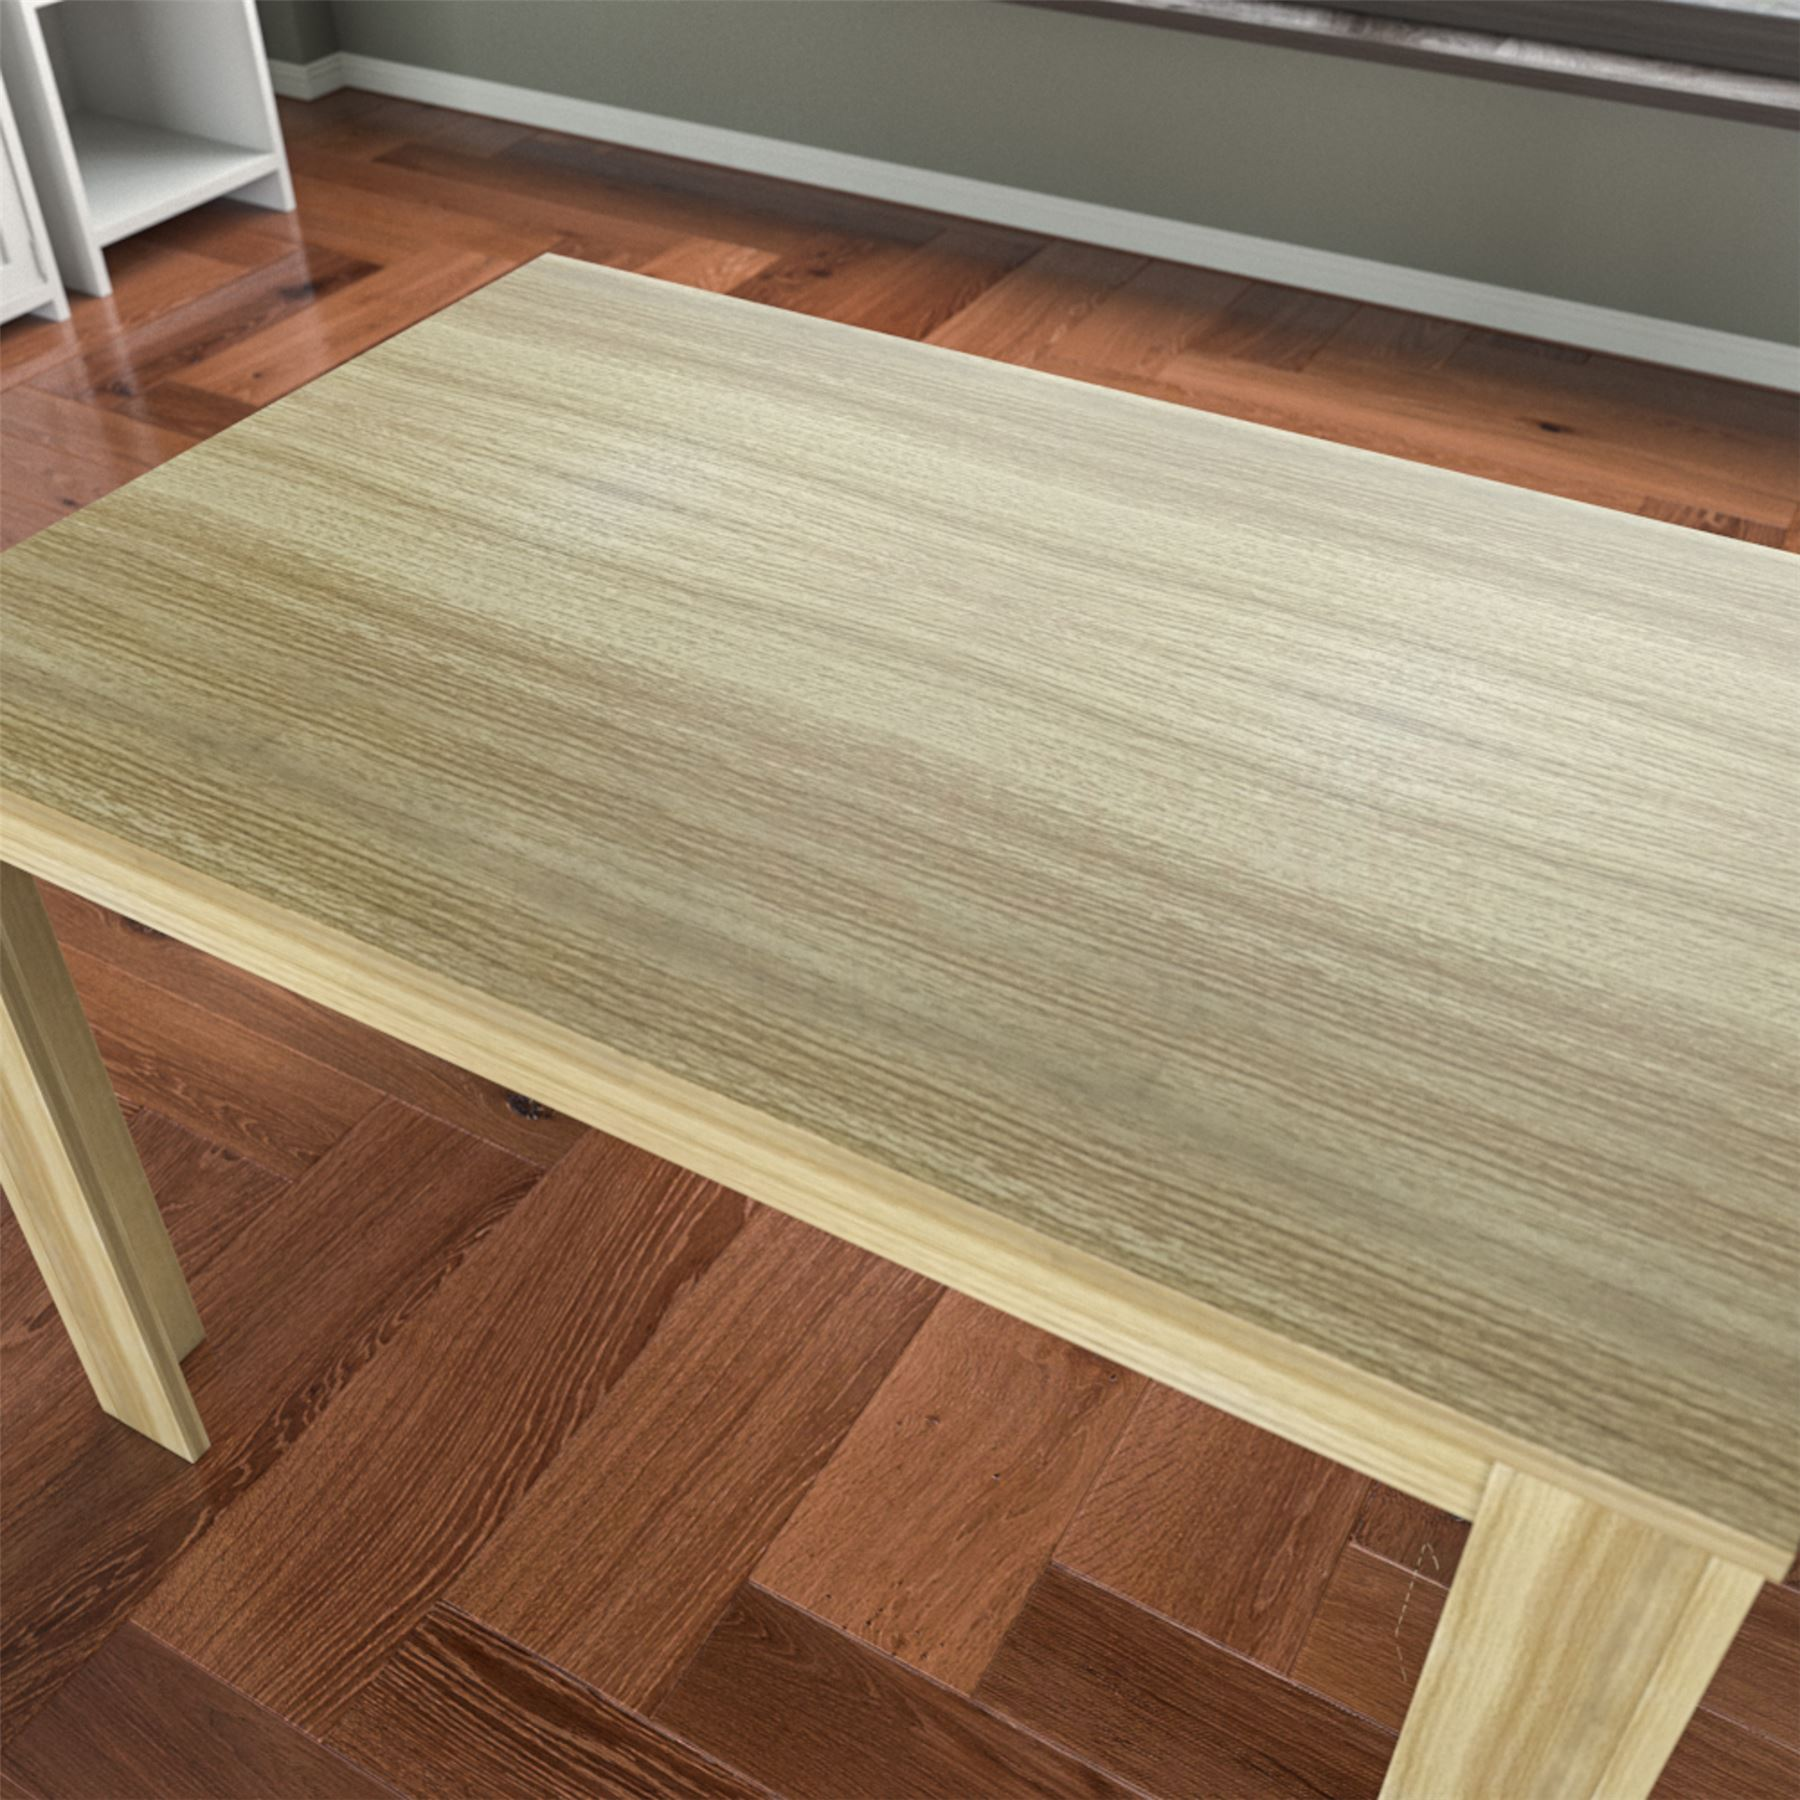 Dining Table 4 Seater Mdf Wood Kitchen Dining Room Seat